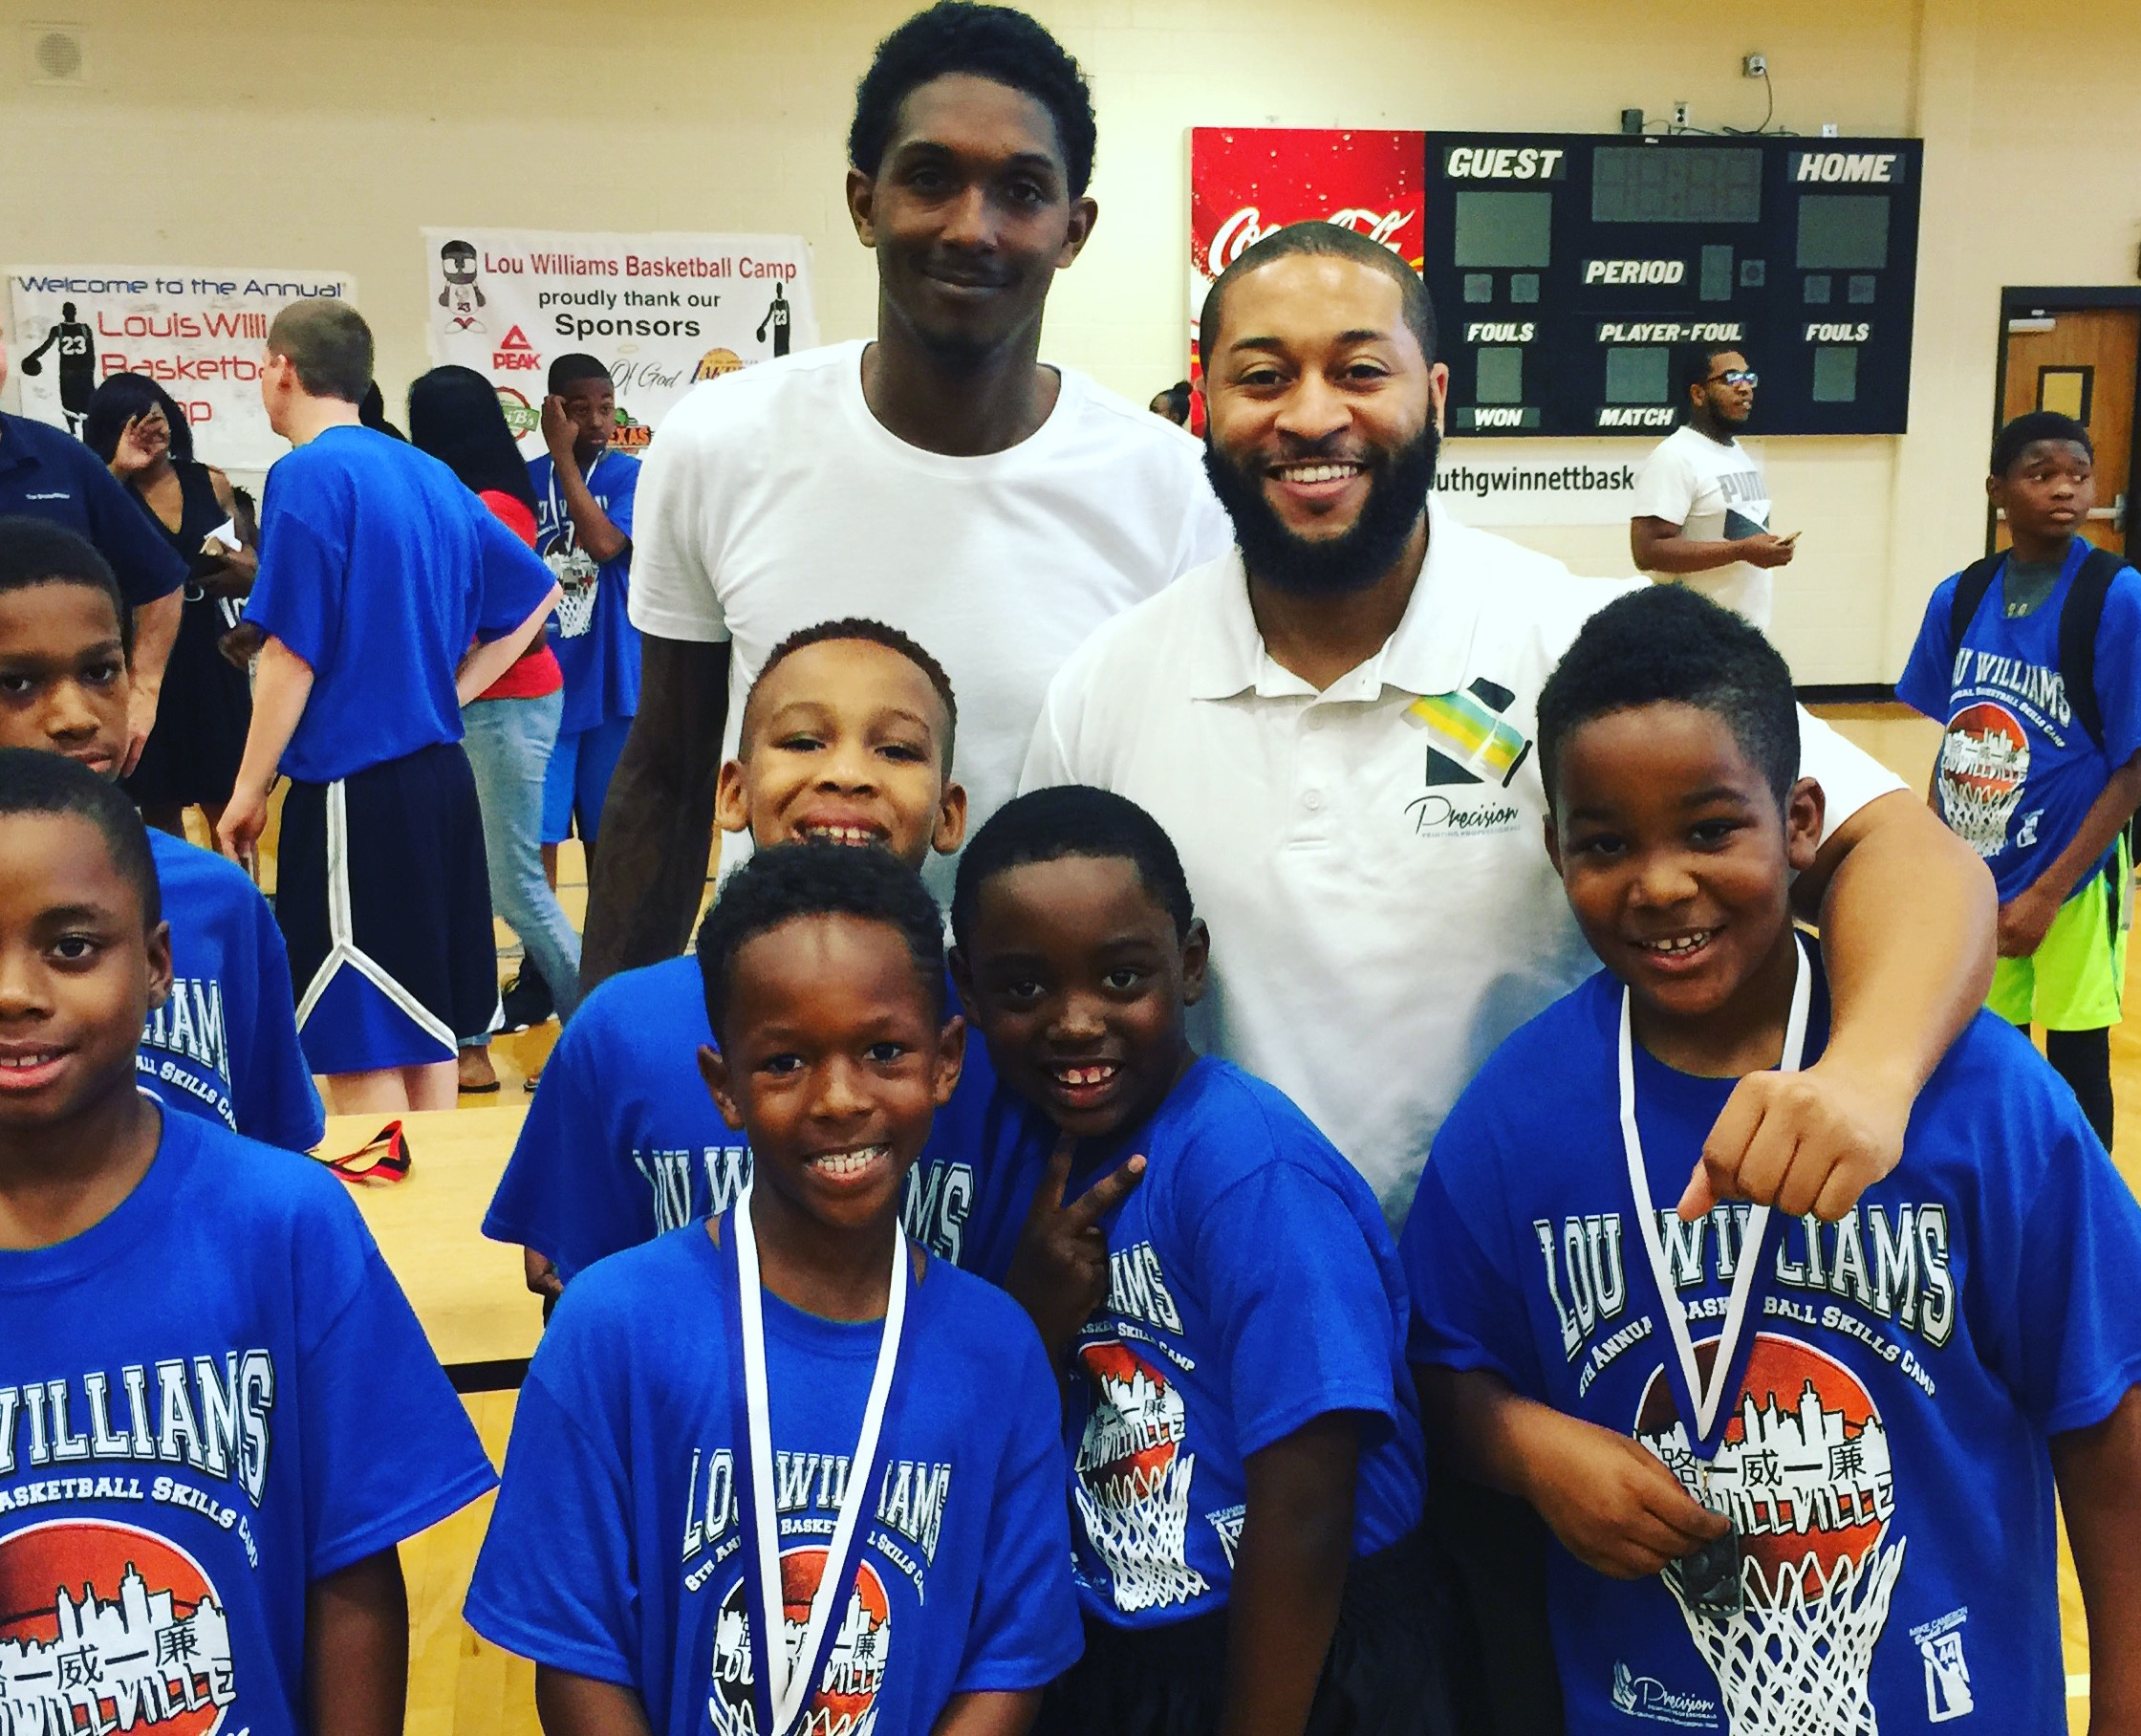 Lou Williams Basketball Camp